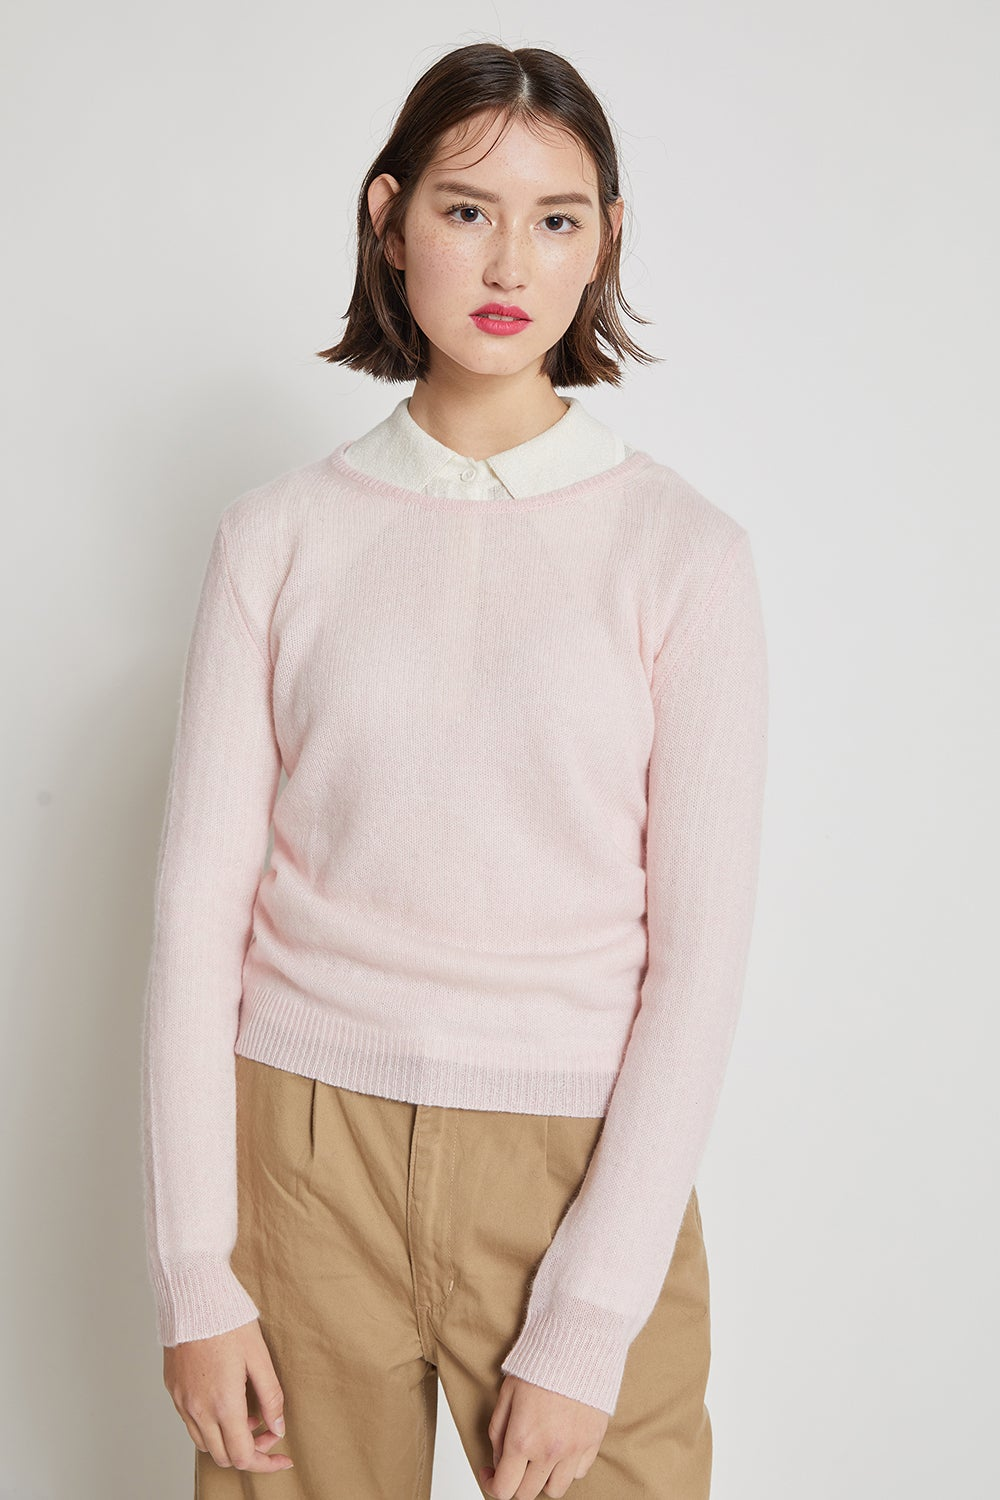 Jumper1234 Loose Knit Crew Neck